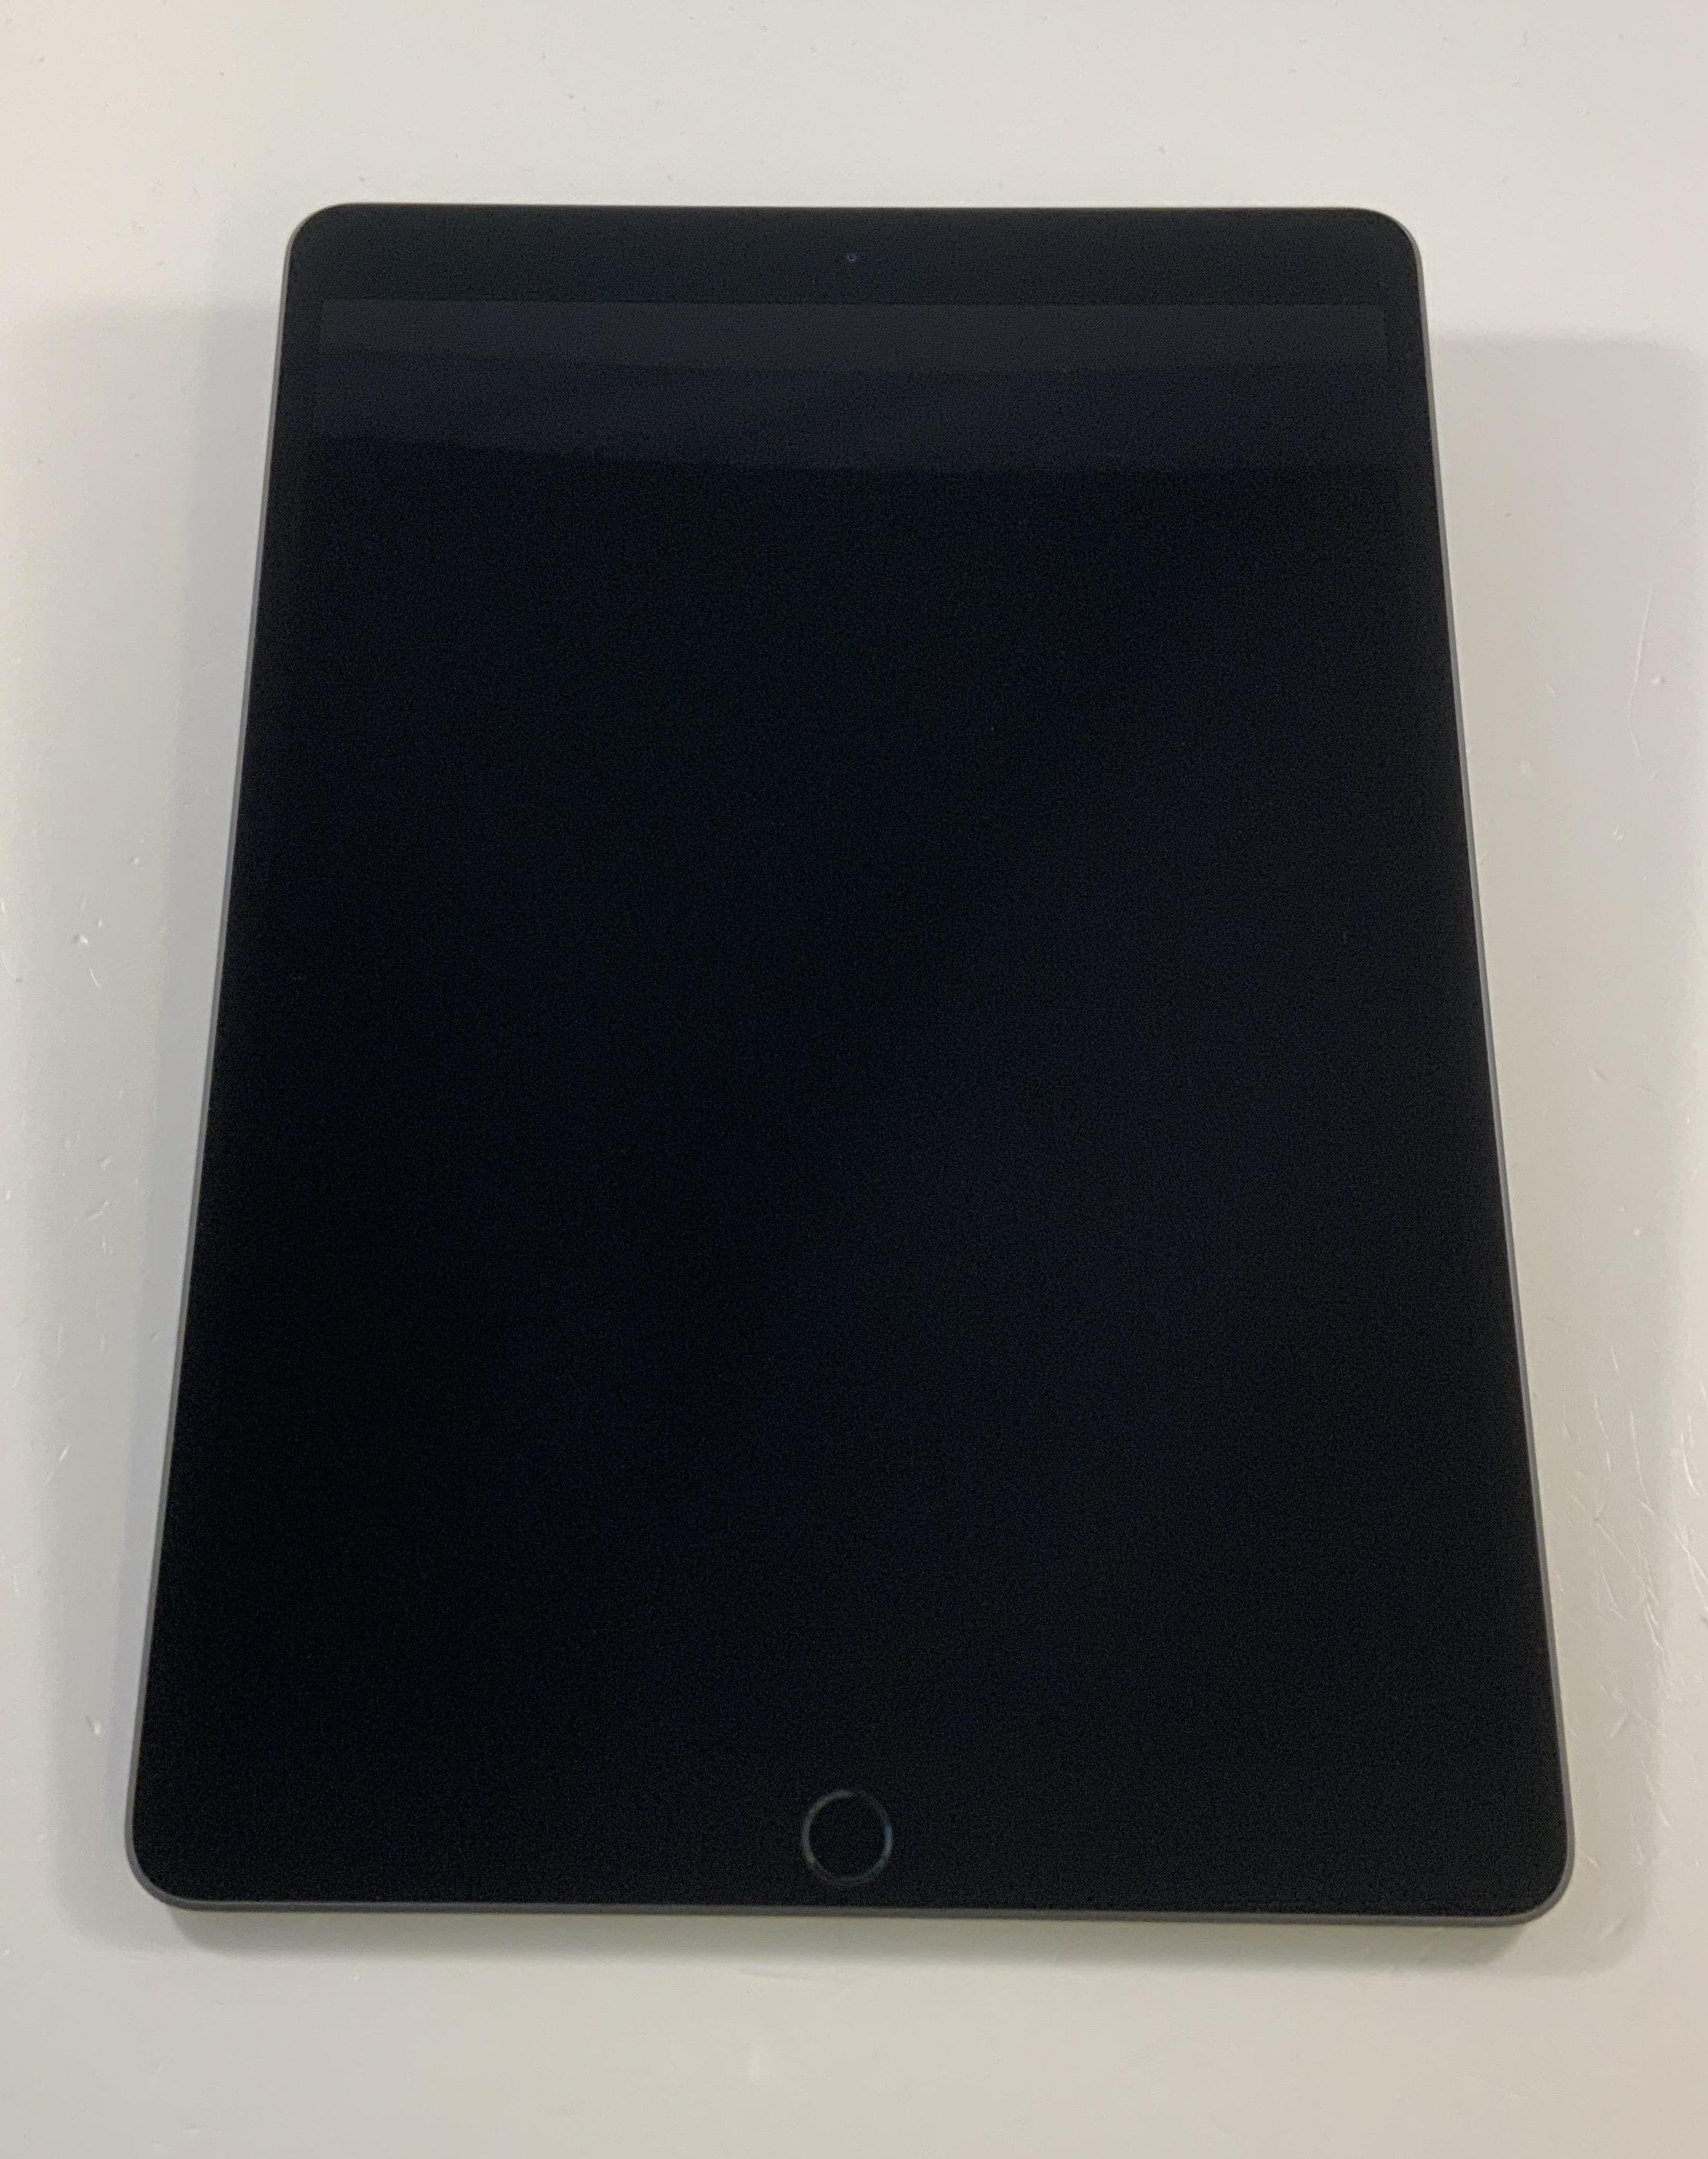 iPad Air 3 Wi-Fi 256GB, 256GB, Space Gray, imagen 1